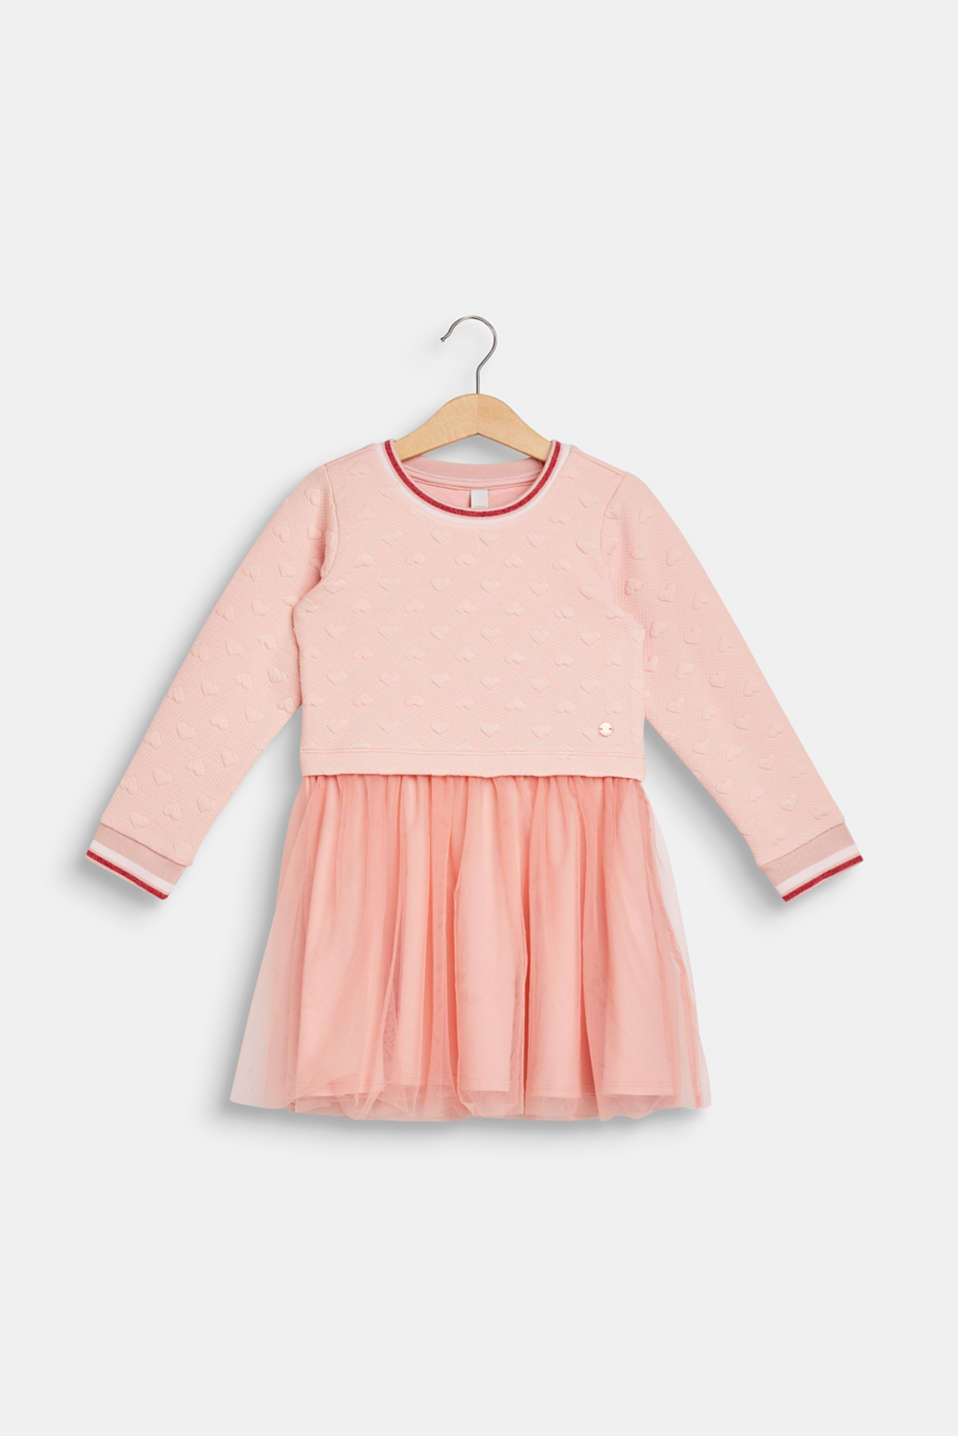 Sweatshirt fabric dress with a mesh skirt, LIGHT BLUSH, detail image number 0